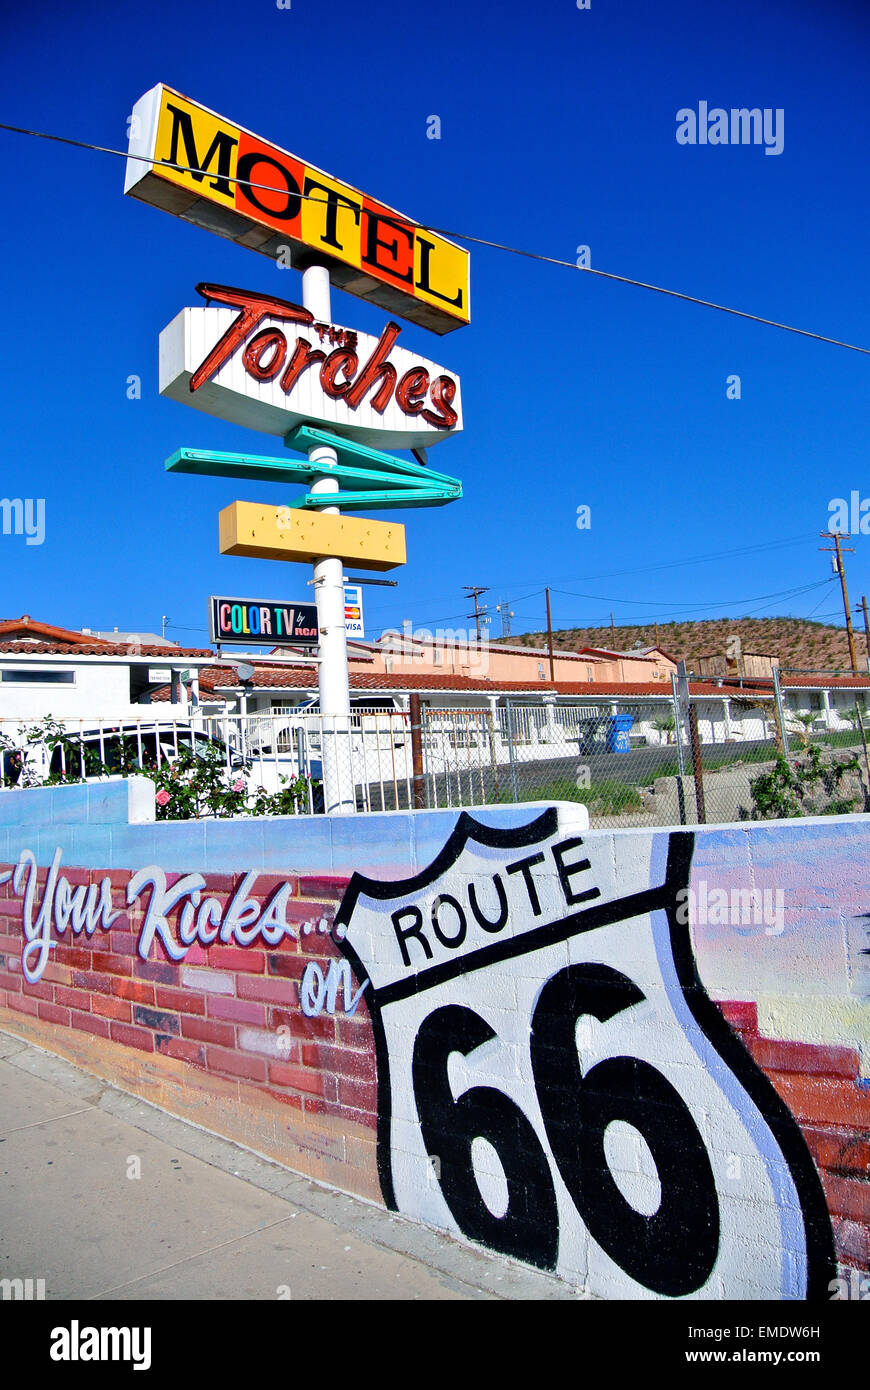 view of historic torches motel and route 66 sign in Barstow California - Stock Image